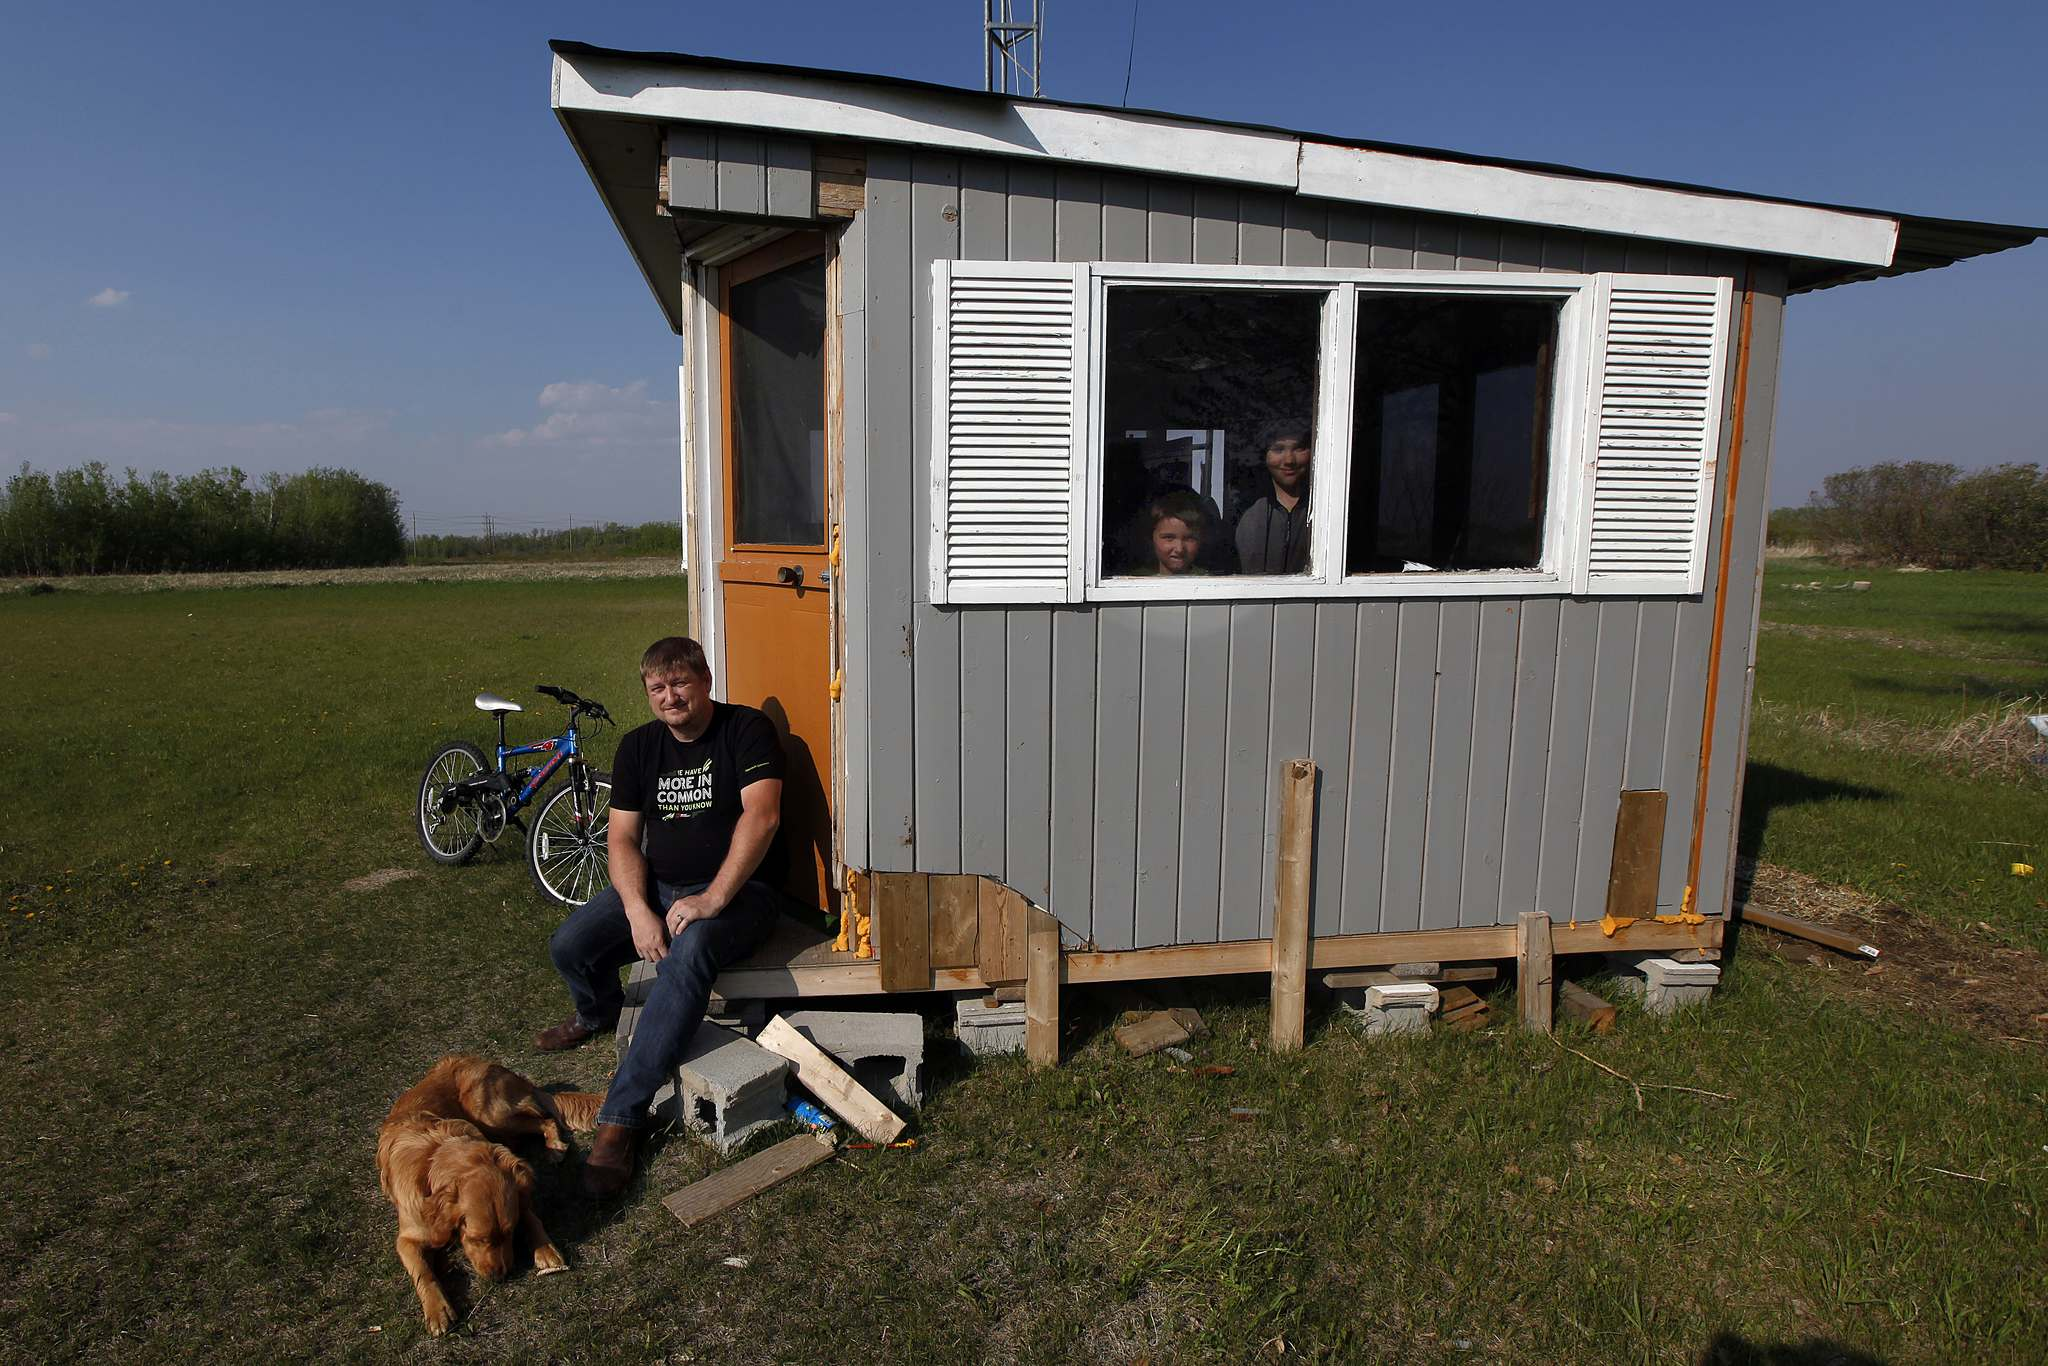 Fleury sits on the step of his Ham Shack in East Kildonan while his sons Billy, 7, and Avi, 12, peer out the window. (Phil Hossack / Winnipeg Free Press)